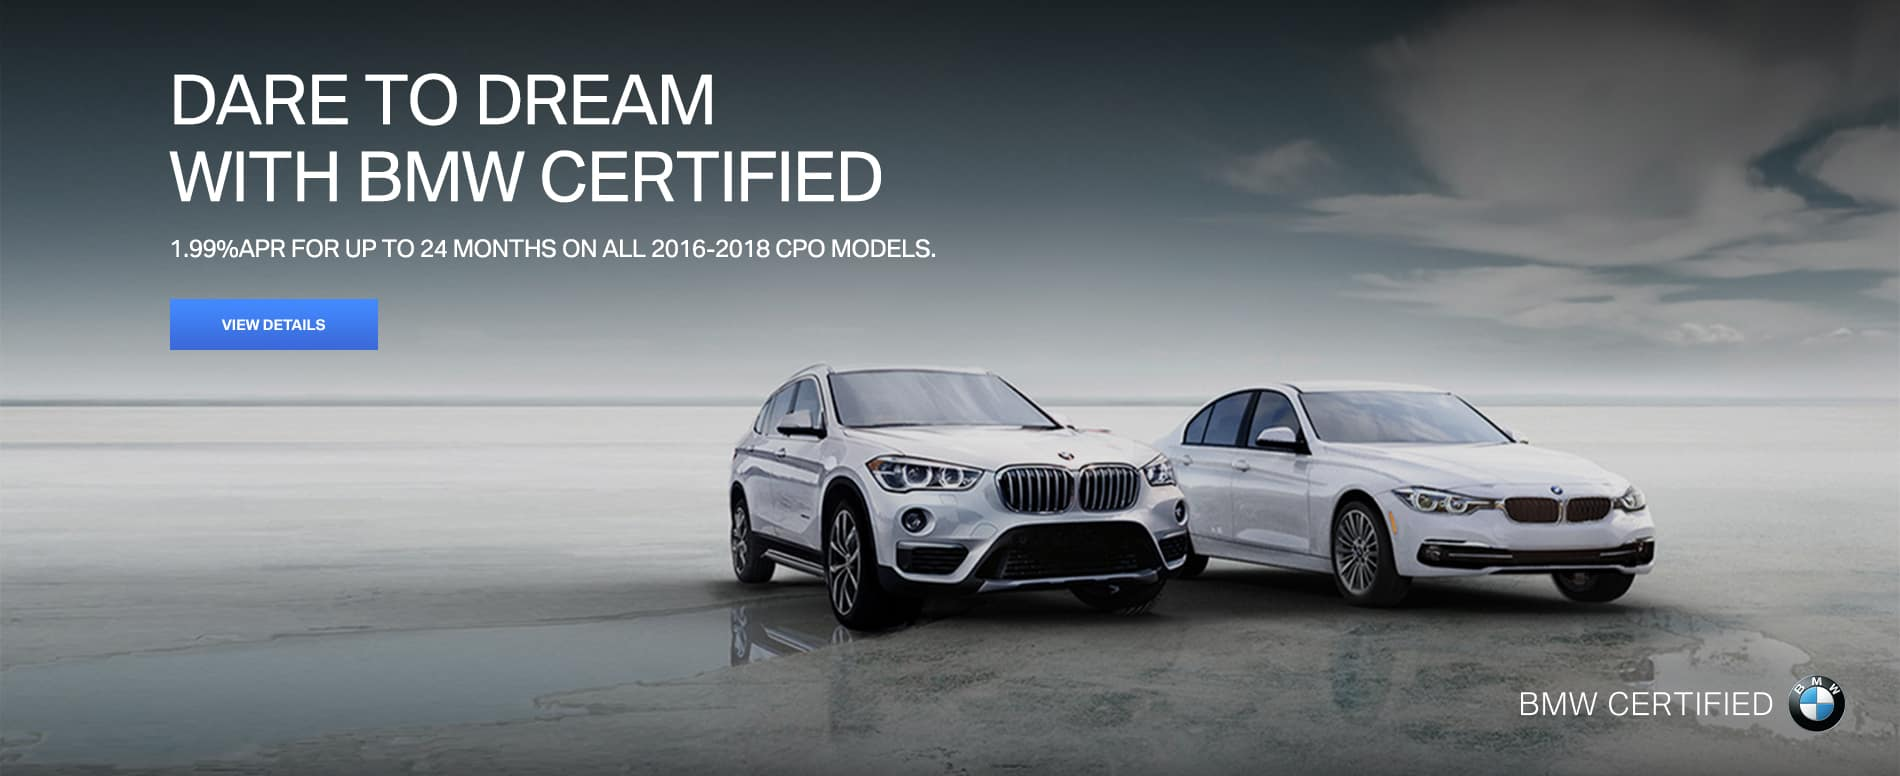 Dare To Dream BMW Certified